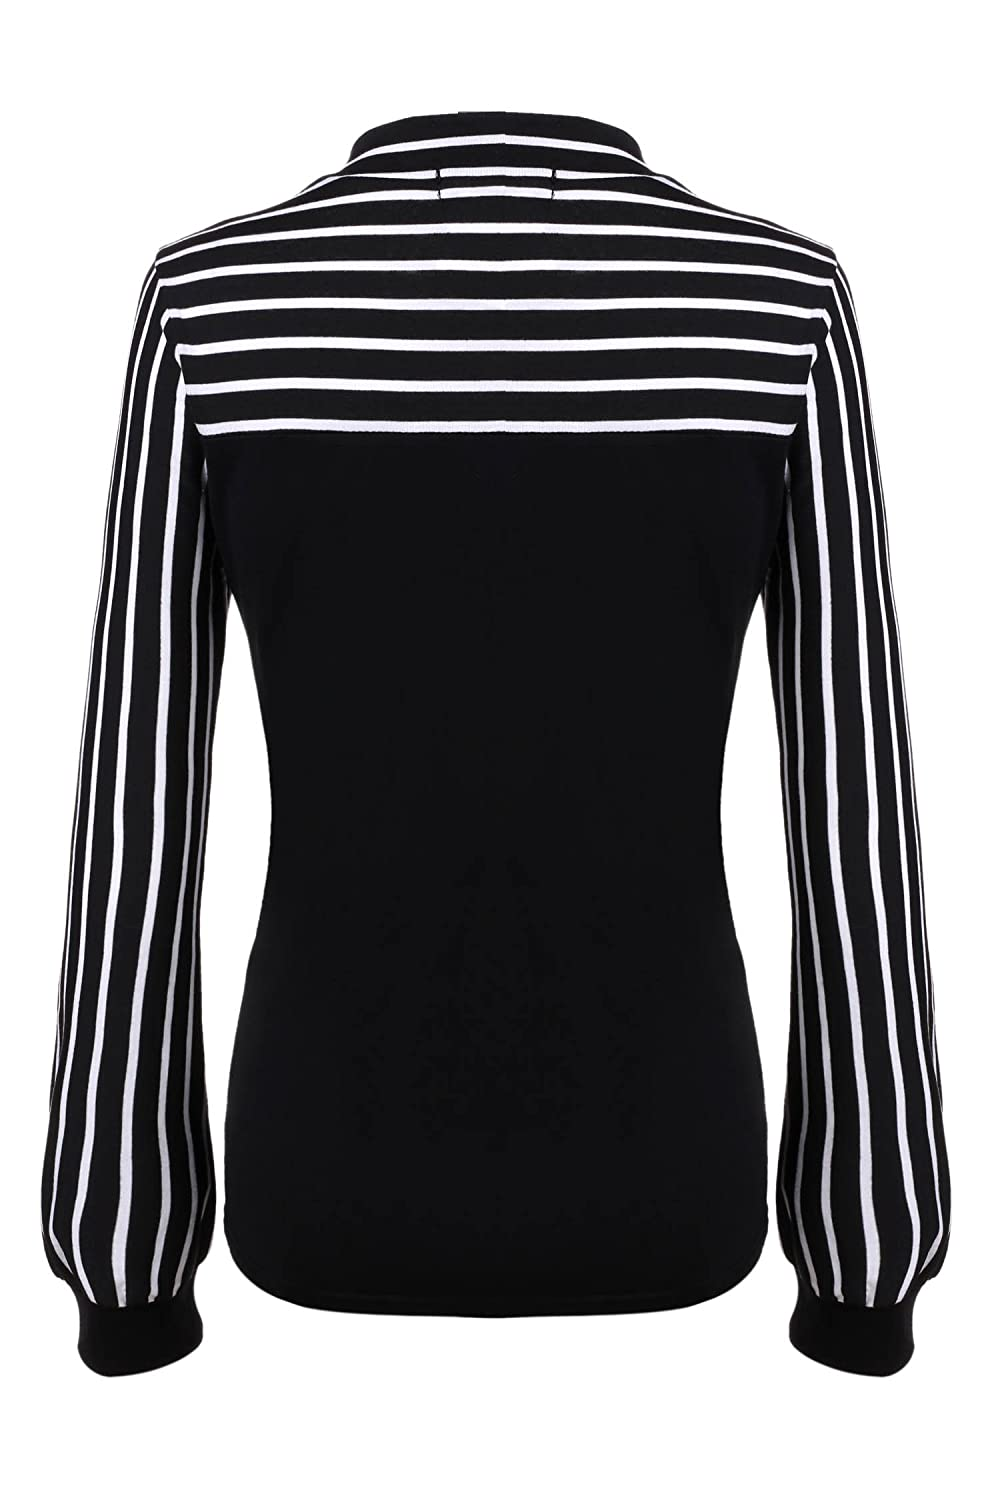 64cc8bac930 Amazon.com: Women's Tie-Bow Neck Striped Blouse Long Sleeve Shirt Office  Work Splicing Blouse Shirts Tops: Clothing